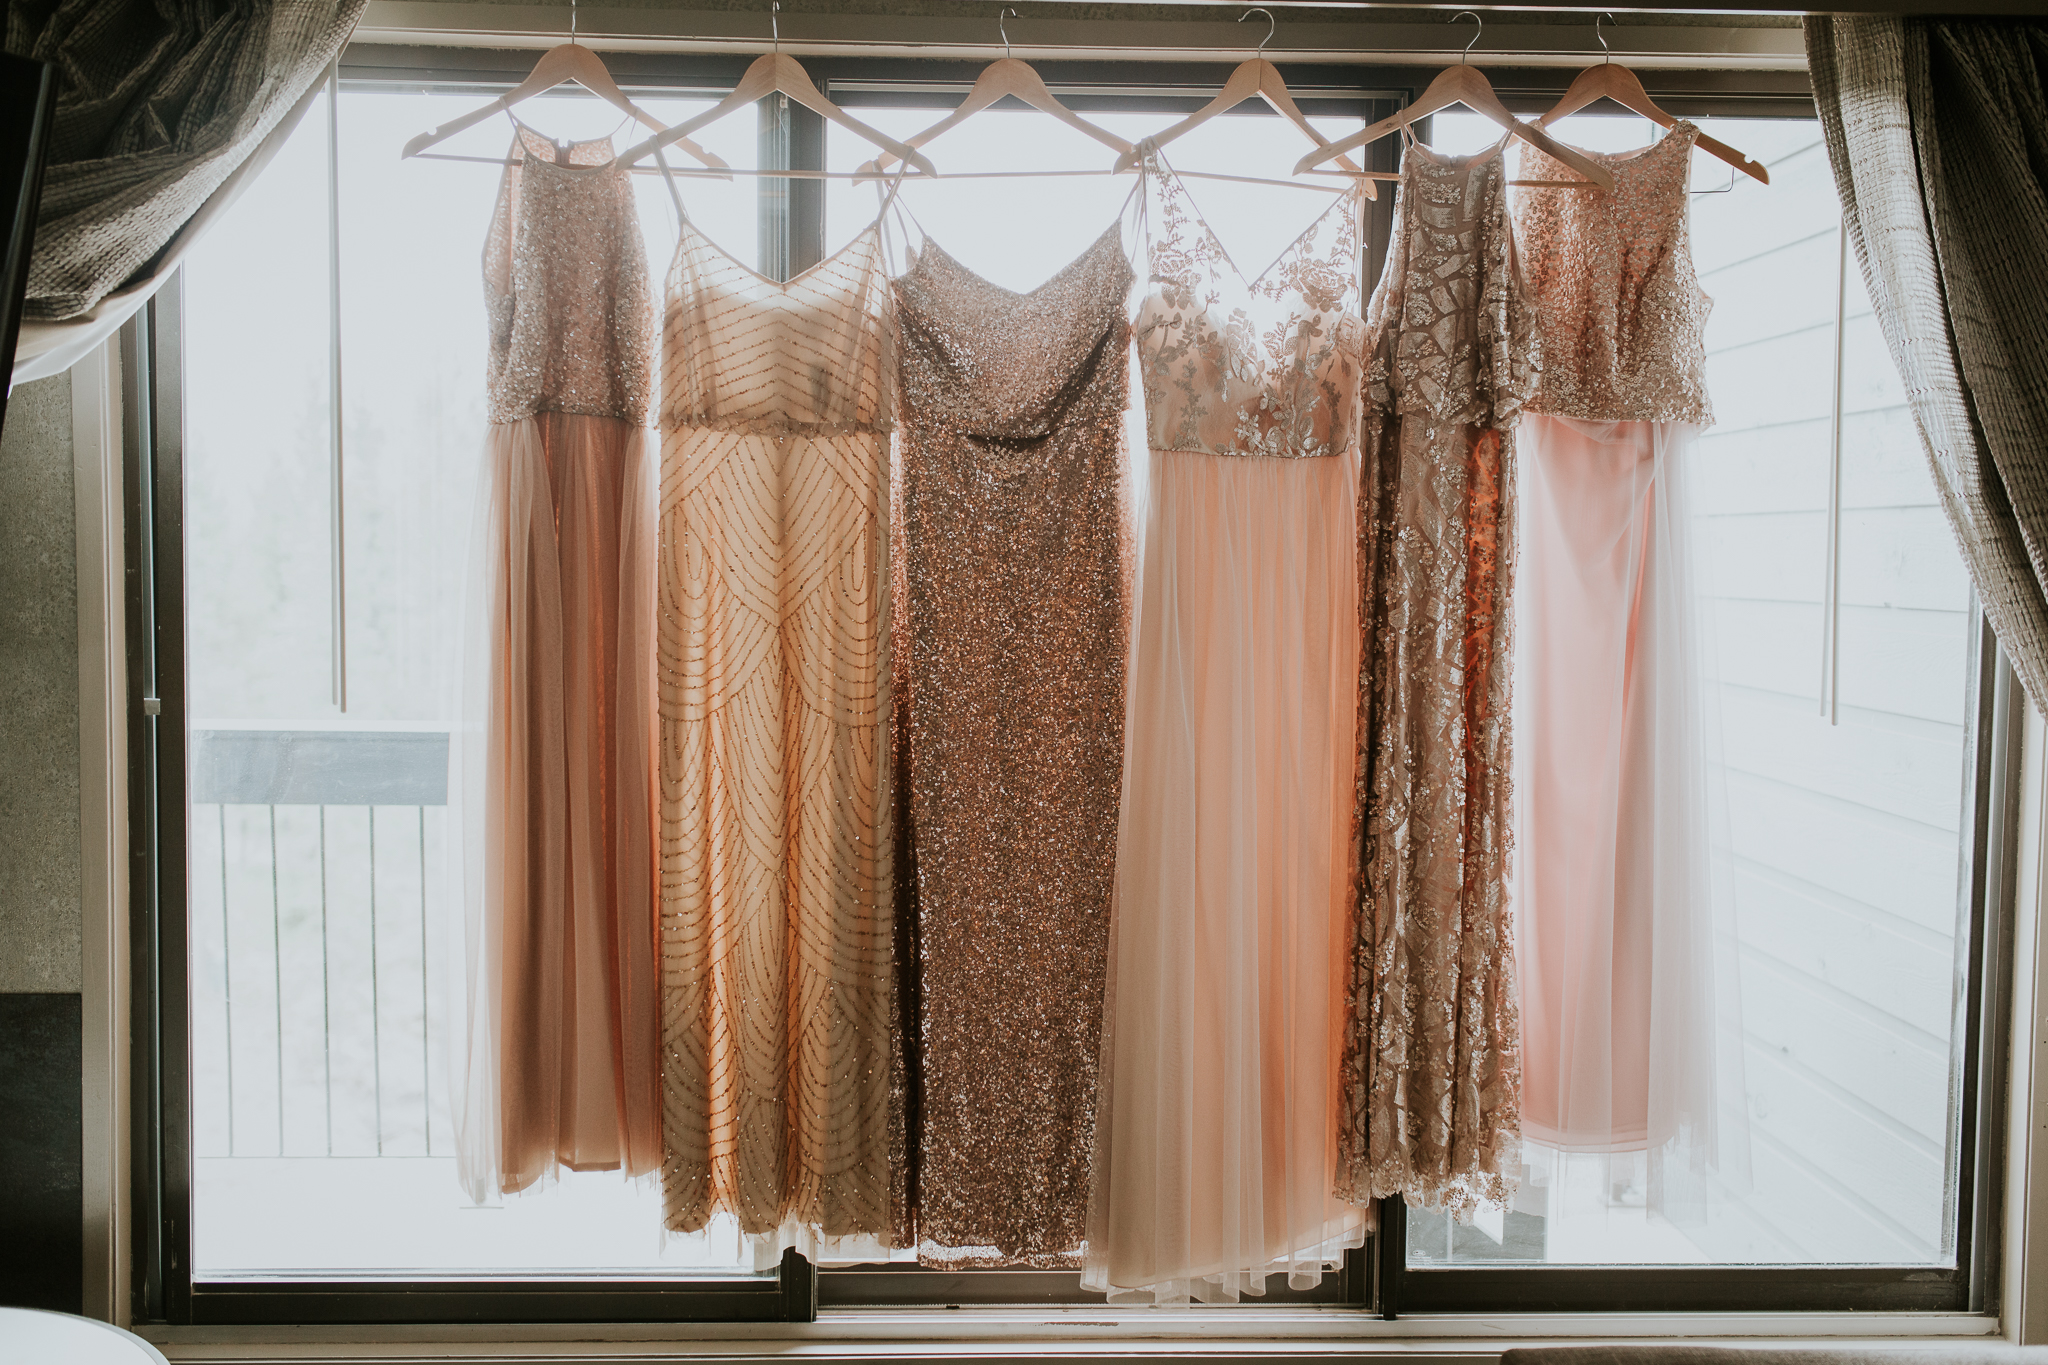 Bridesmaid gowns hanging in window of Delta Kananaskis